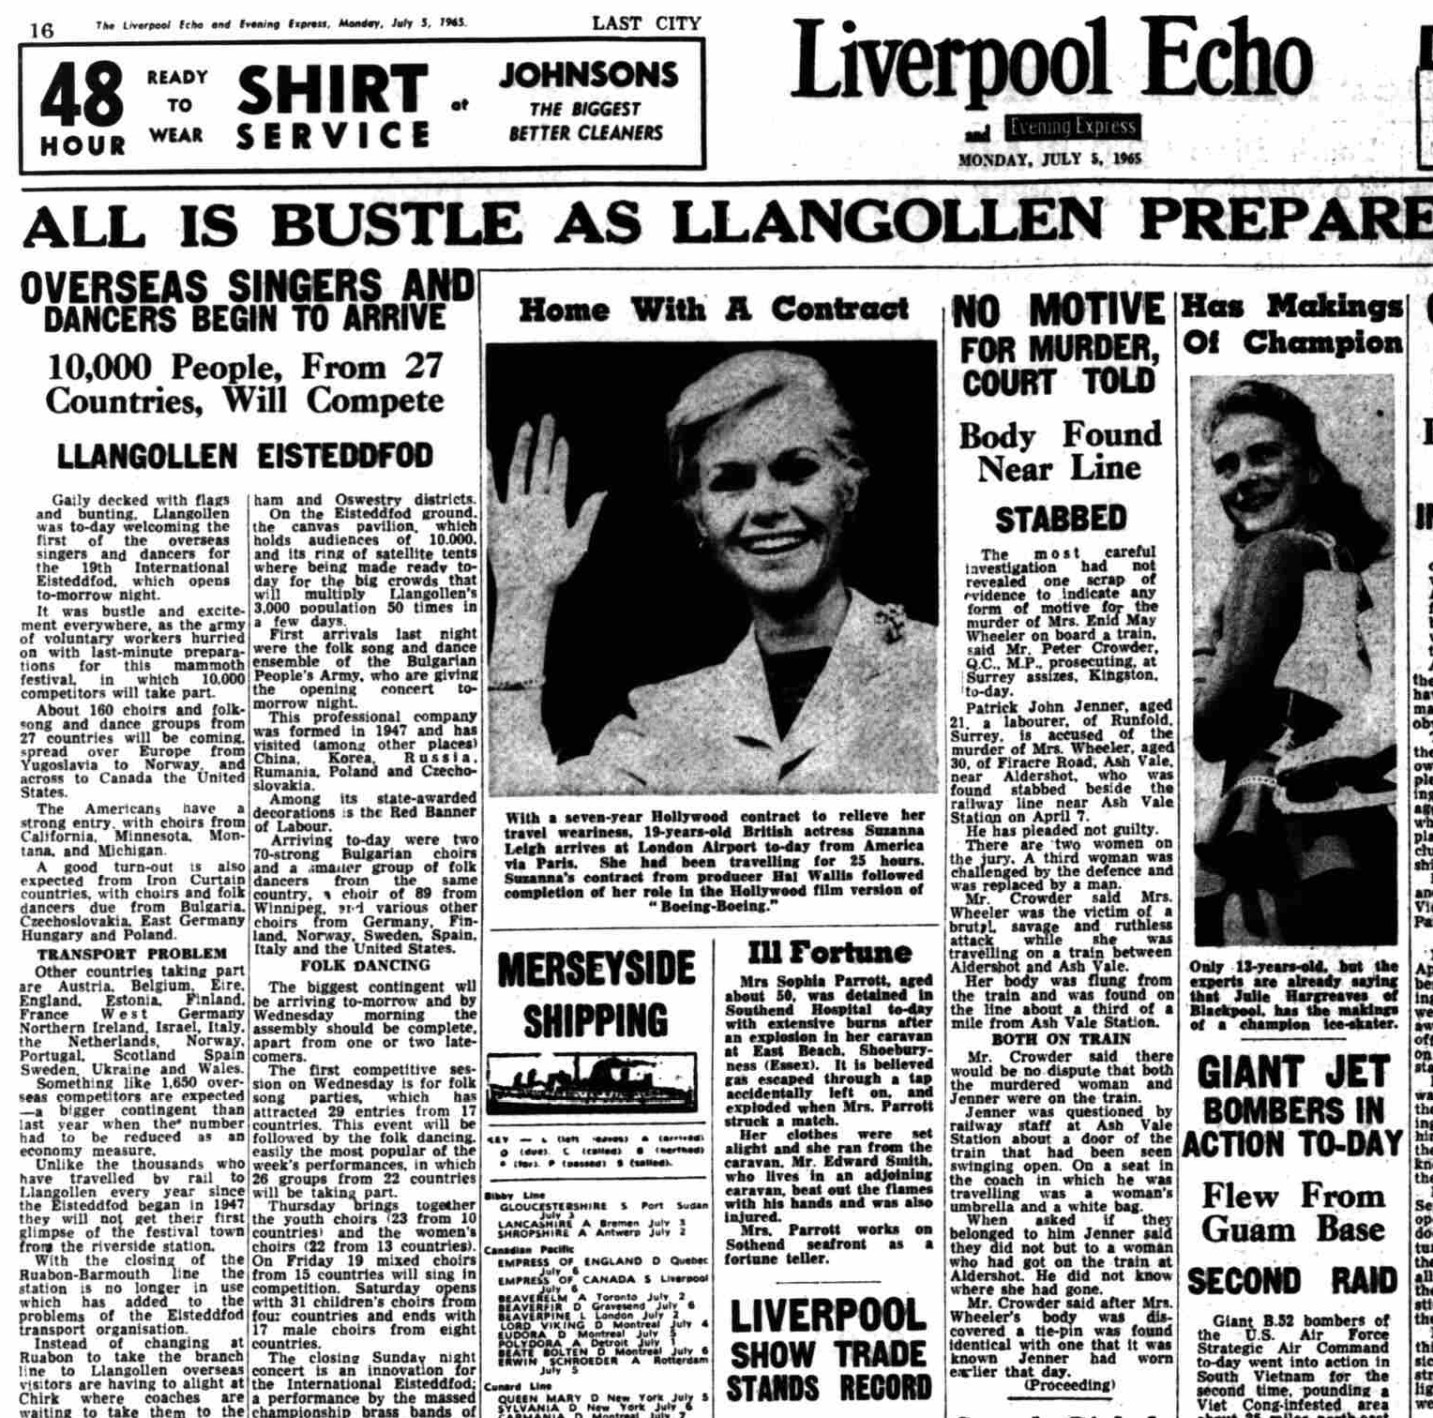 A newspaper page from the Liverpool Echo of 1965. Reports the death of a Mrs Parrett in a caravan explosion.